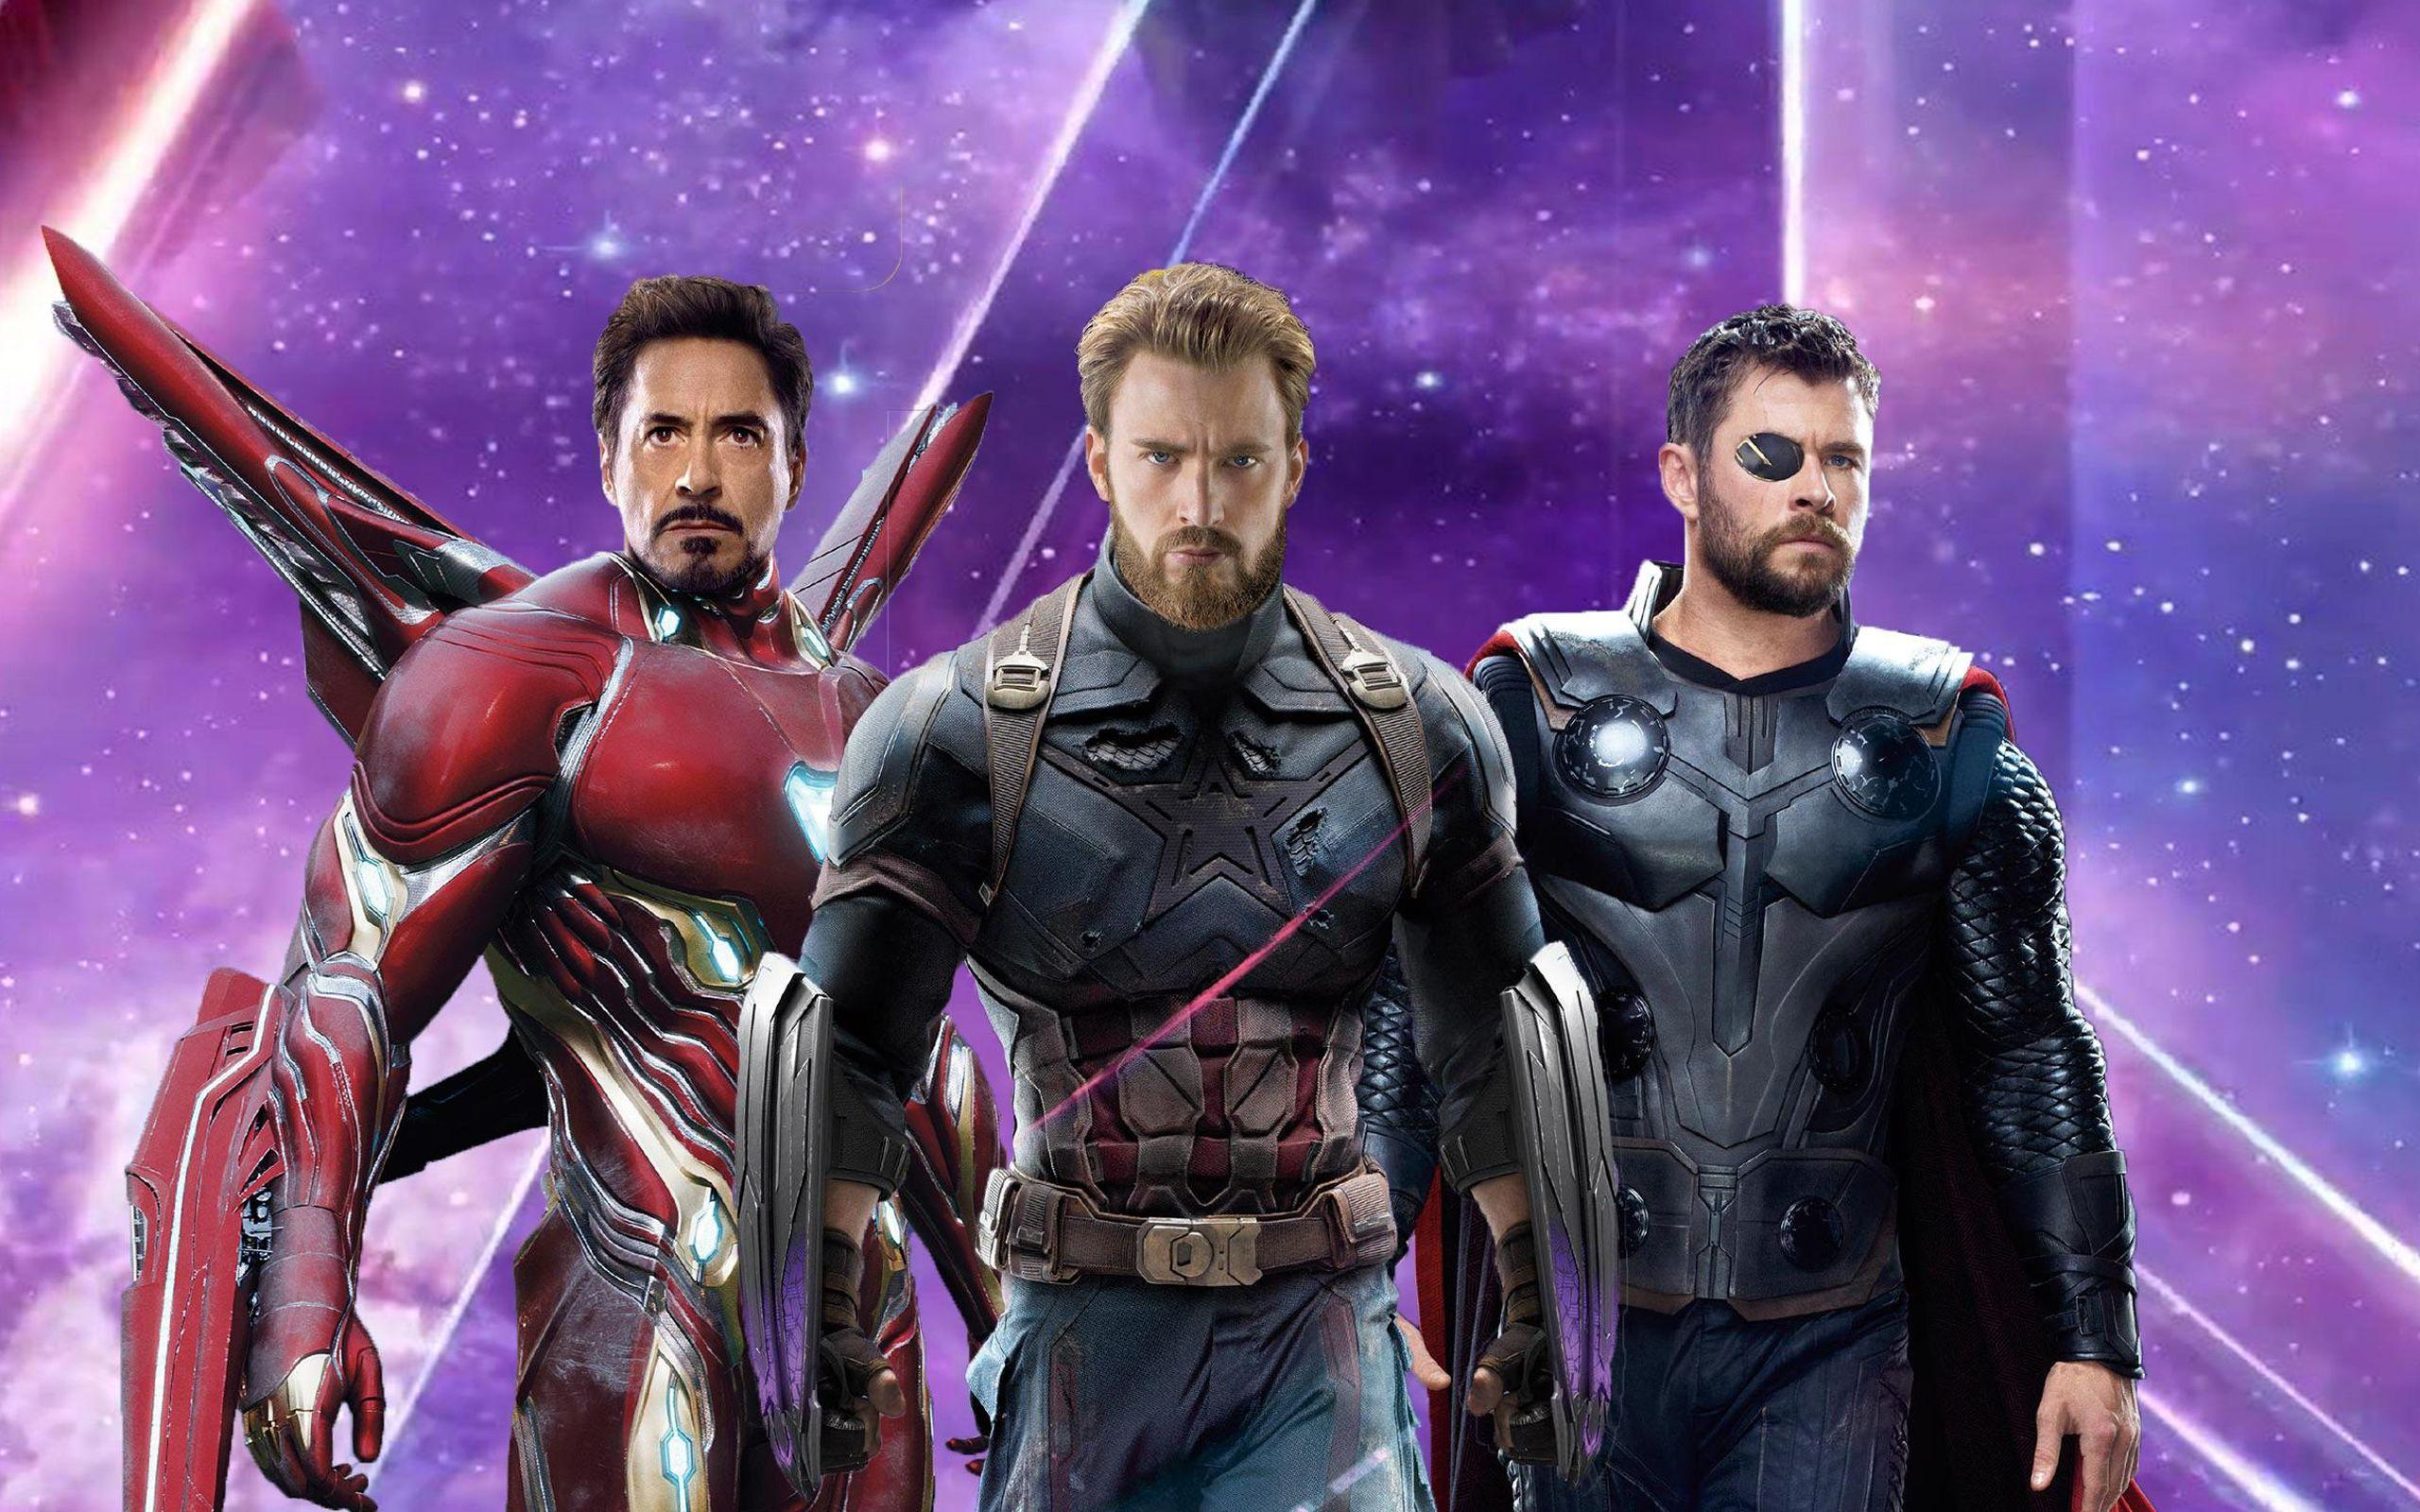 Iron Man Captain America Thor in Avengers Infinity War Wallpapers .